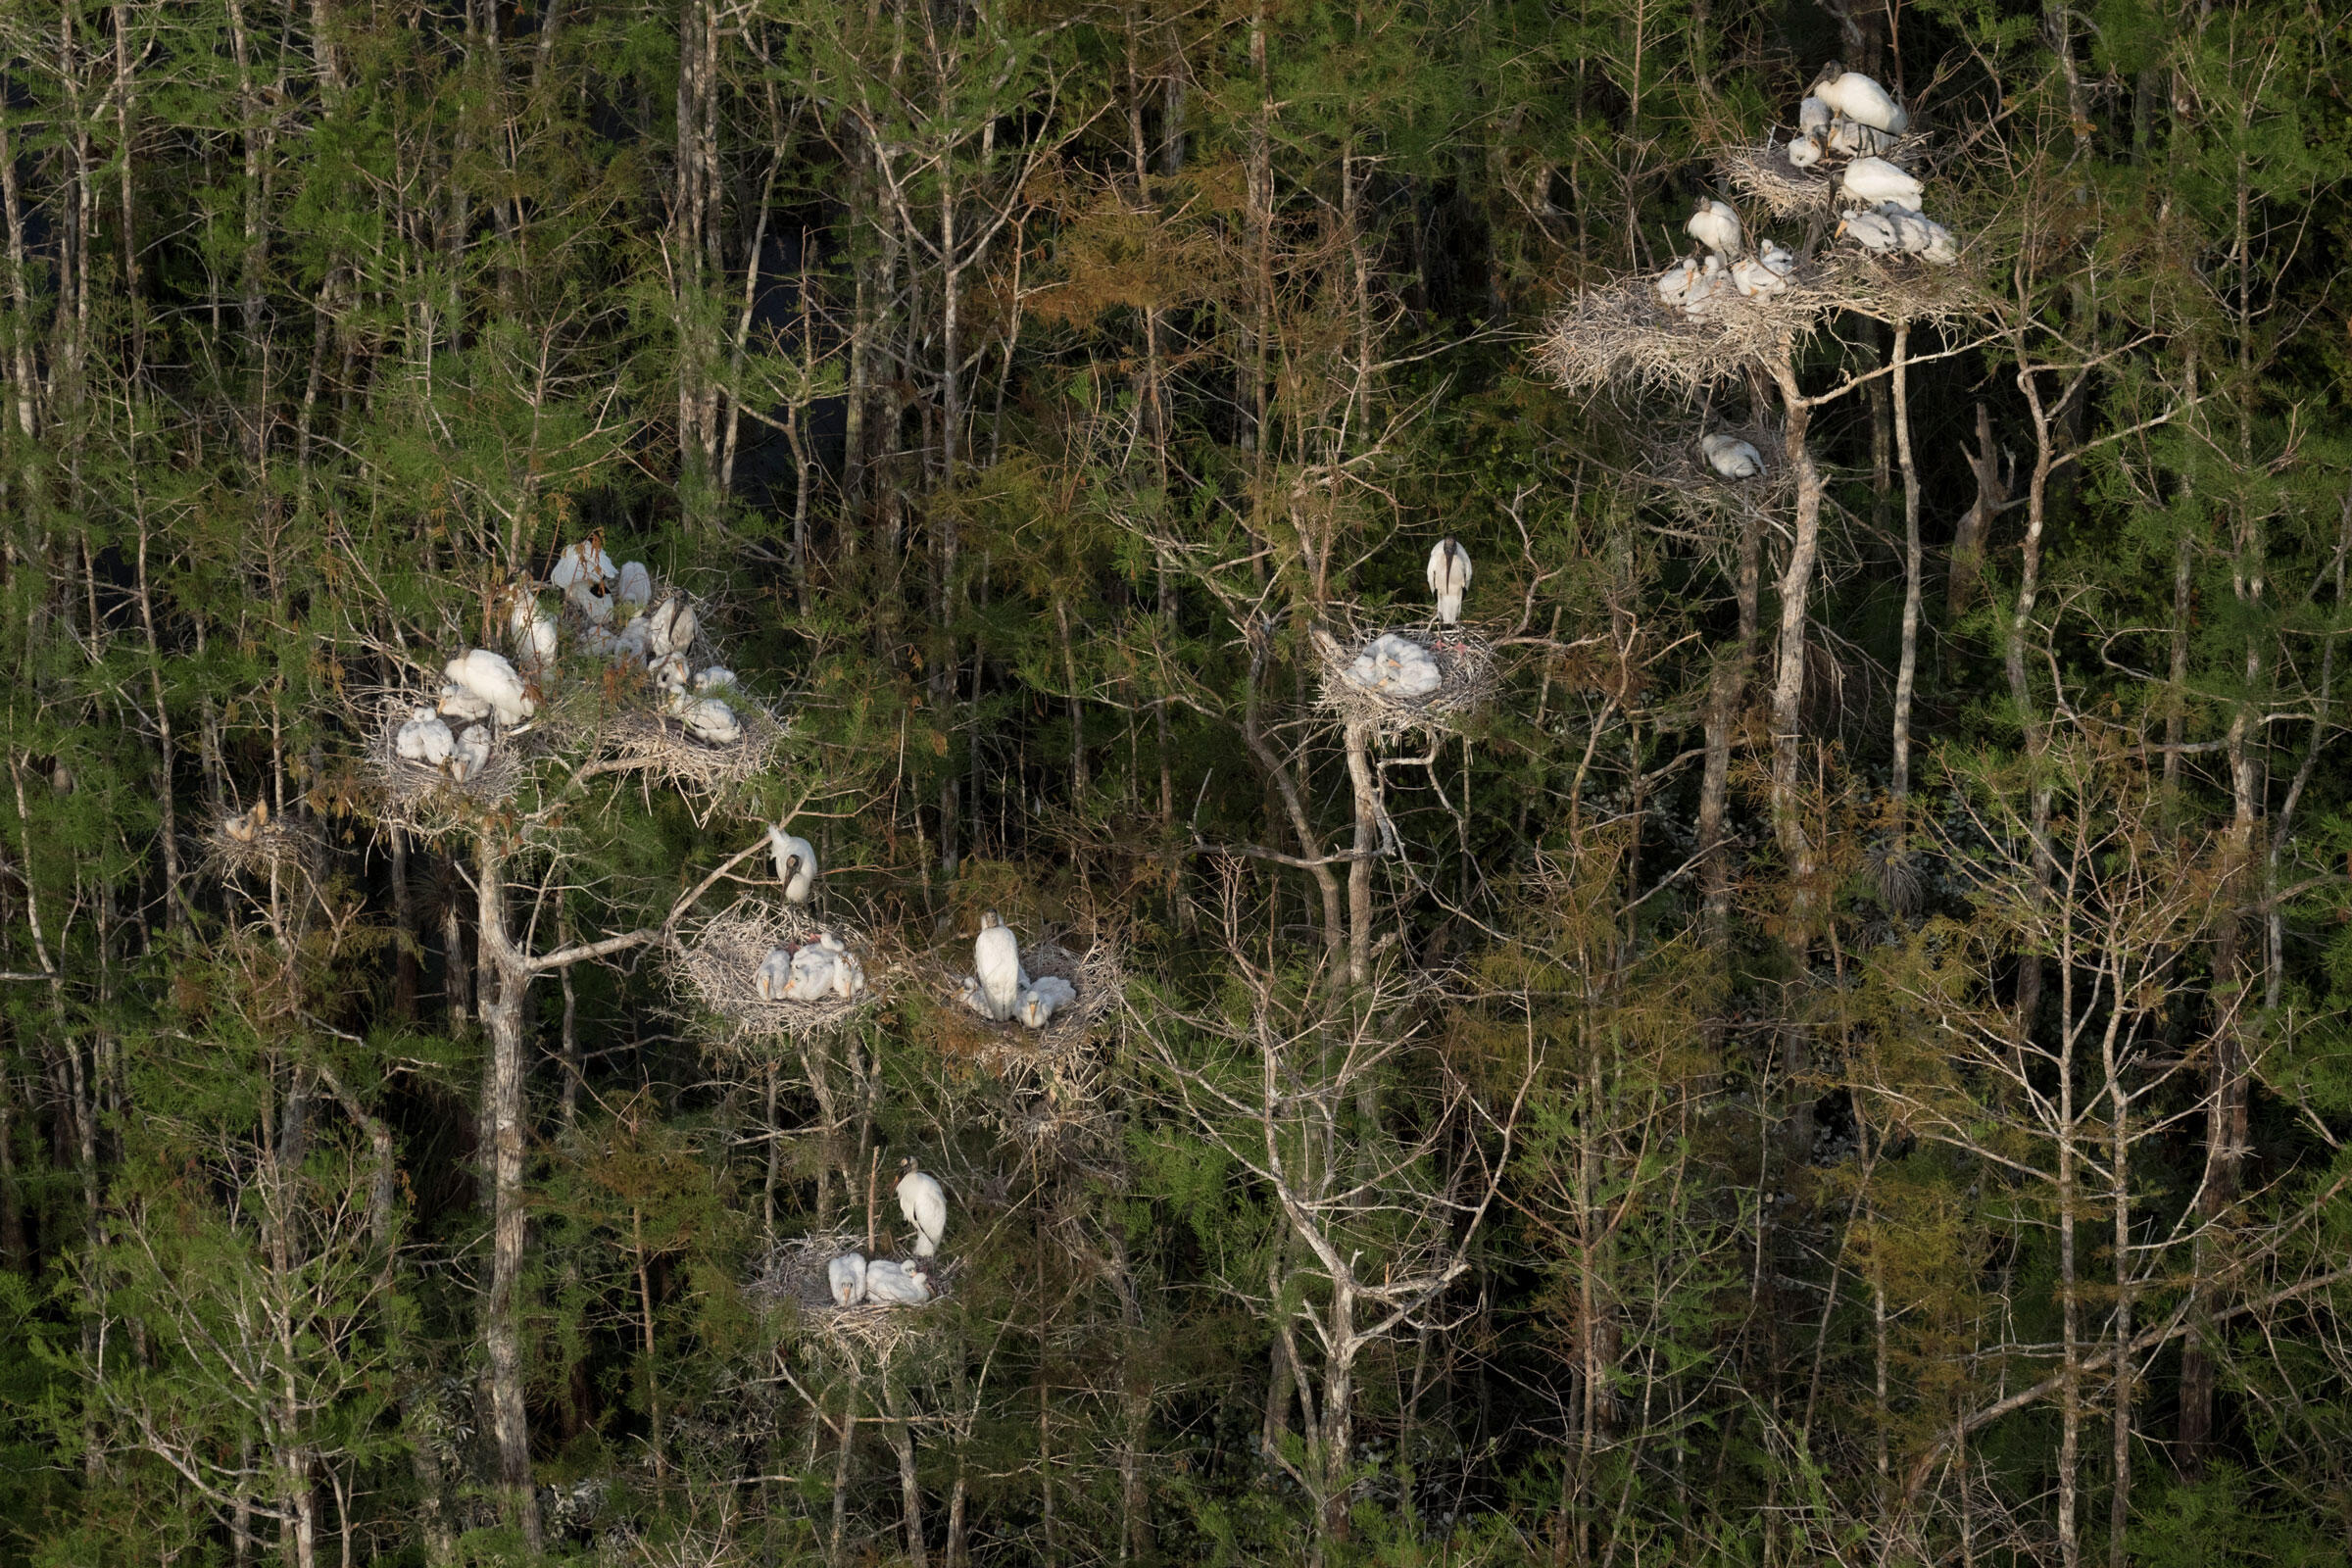 Wood Storks nesting in the Everglades. Mac Stone